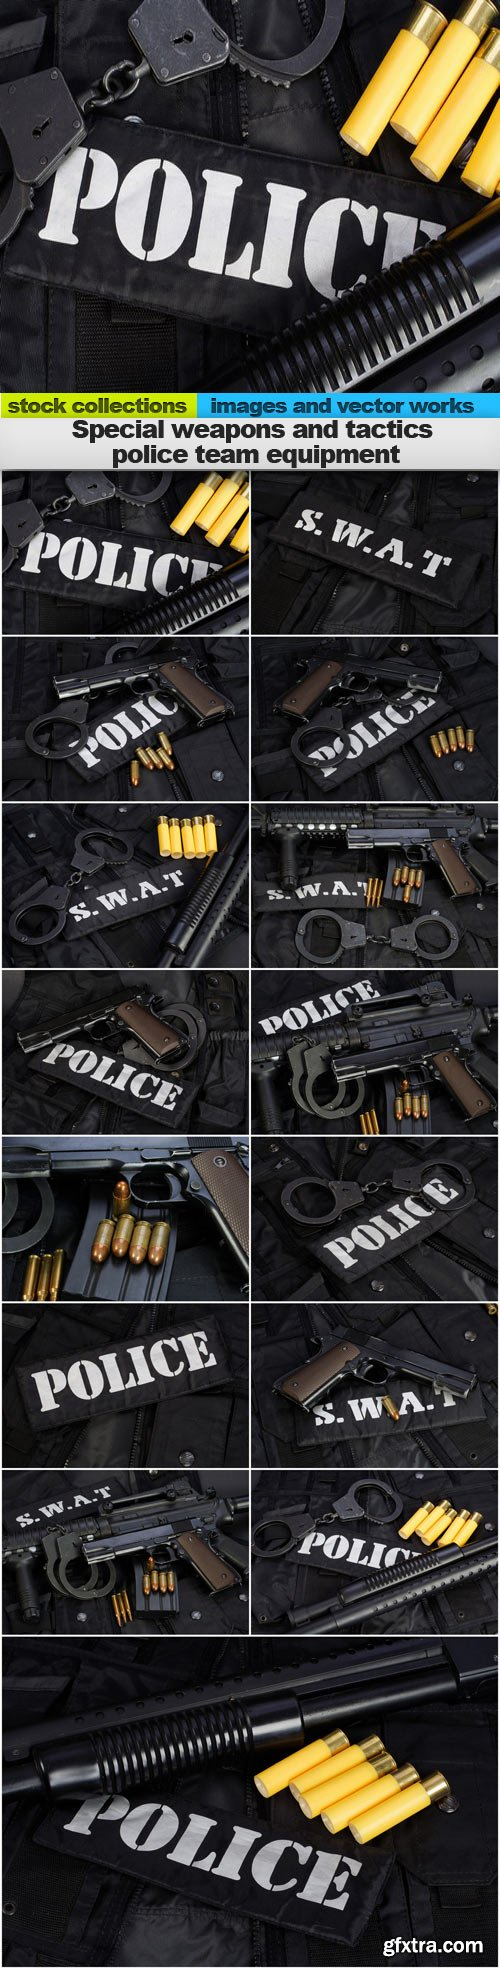 Special weapons and tactics police team equipment, 15 x UHQ JPEG